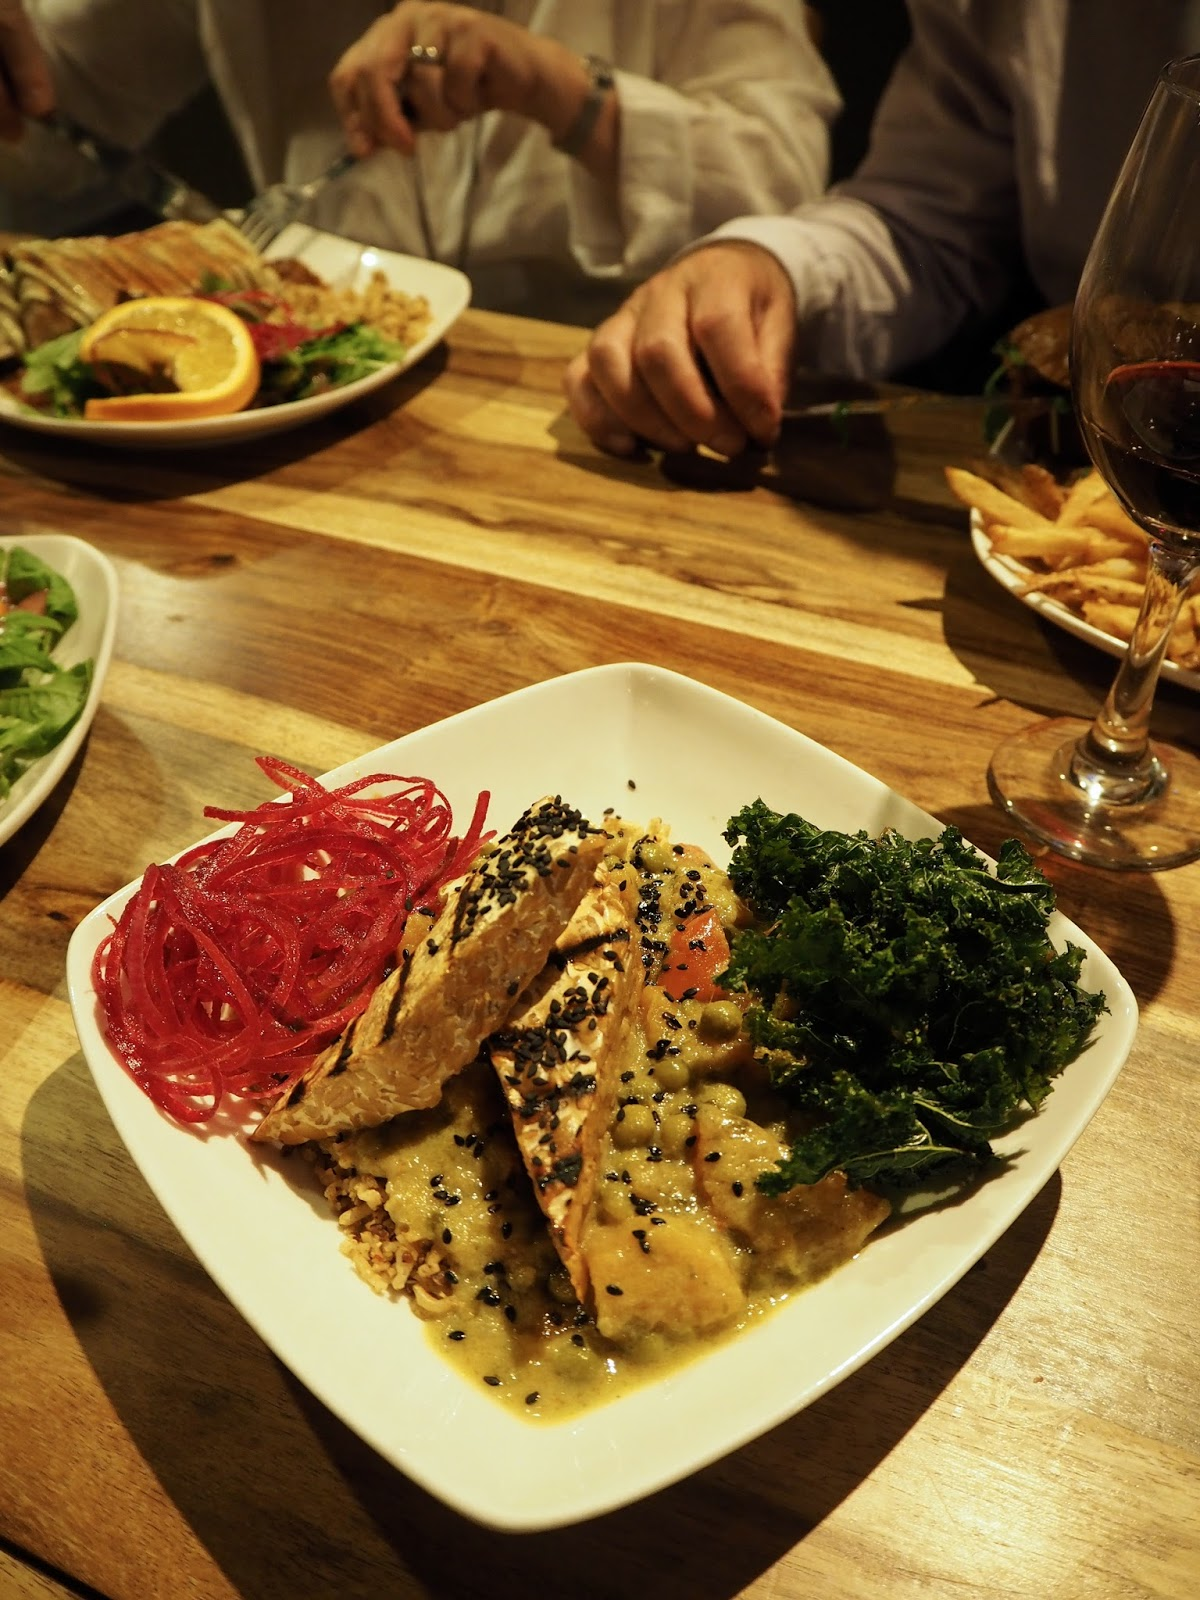 Lola Rosa vegetarian and vegan restaurant review Montreal